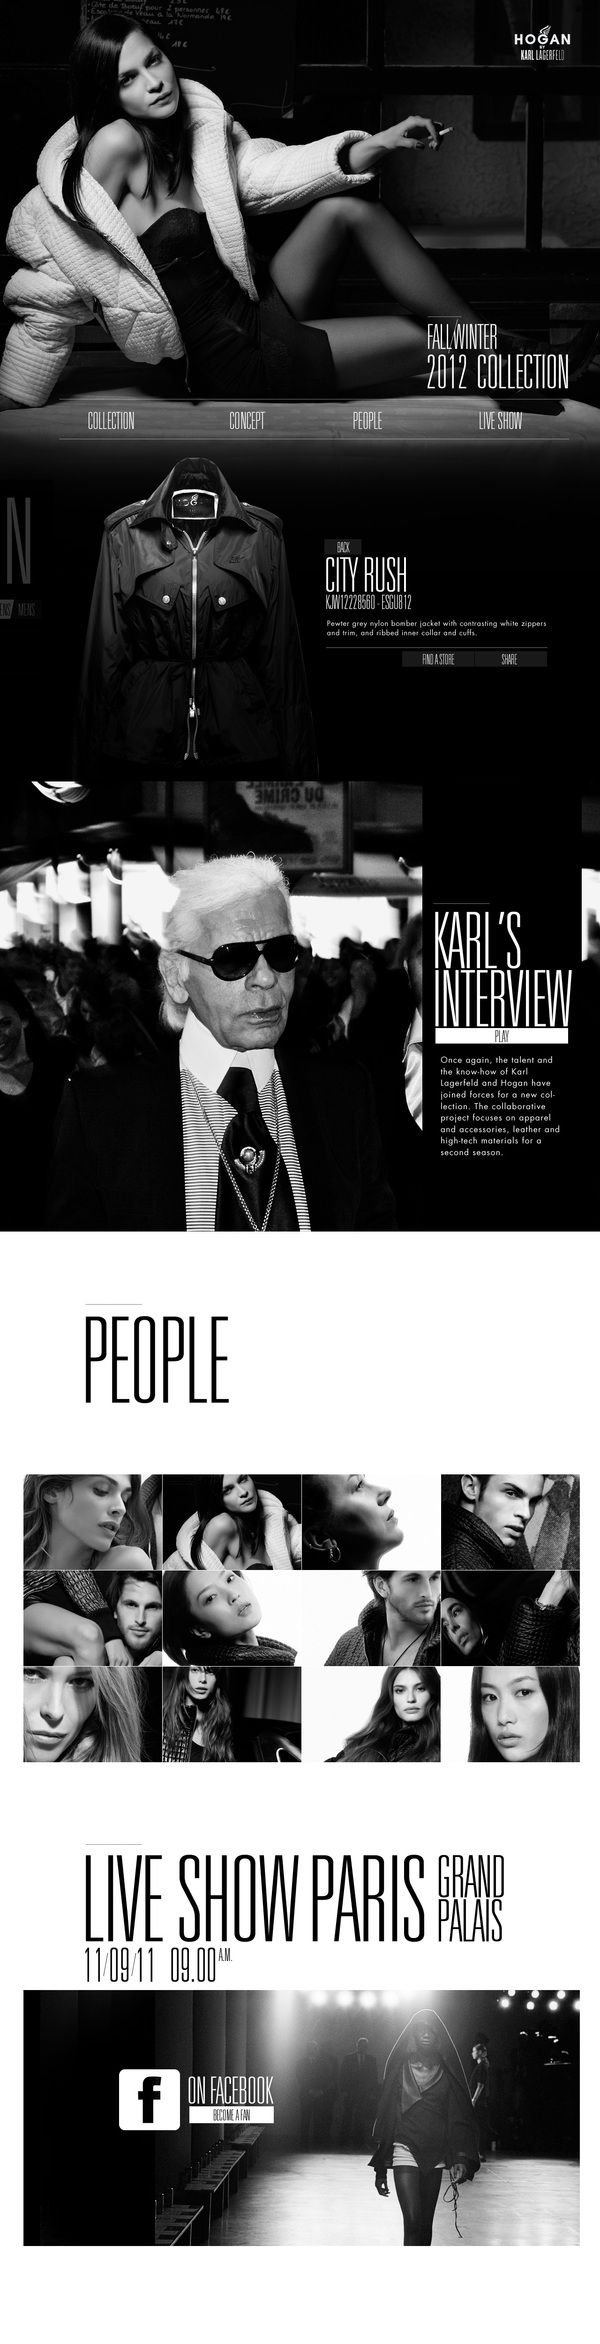 HOGAN BY KARL LAGERFELD by Thomas Ciszewski, via Behance